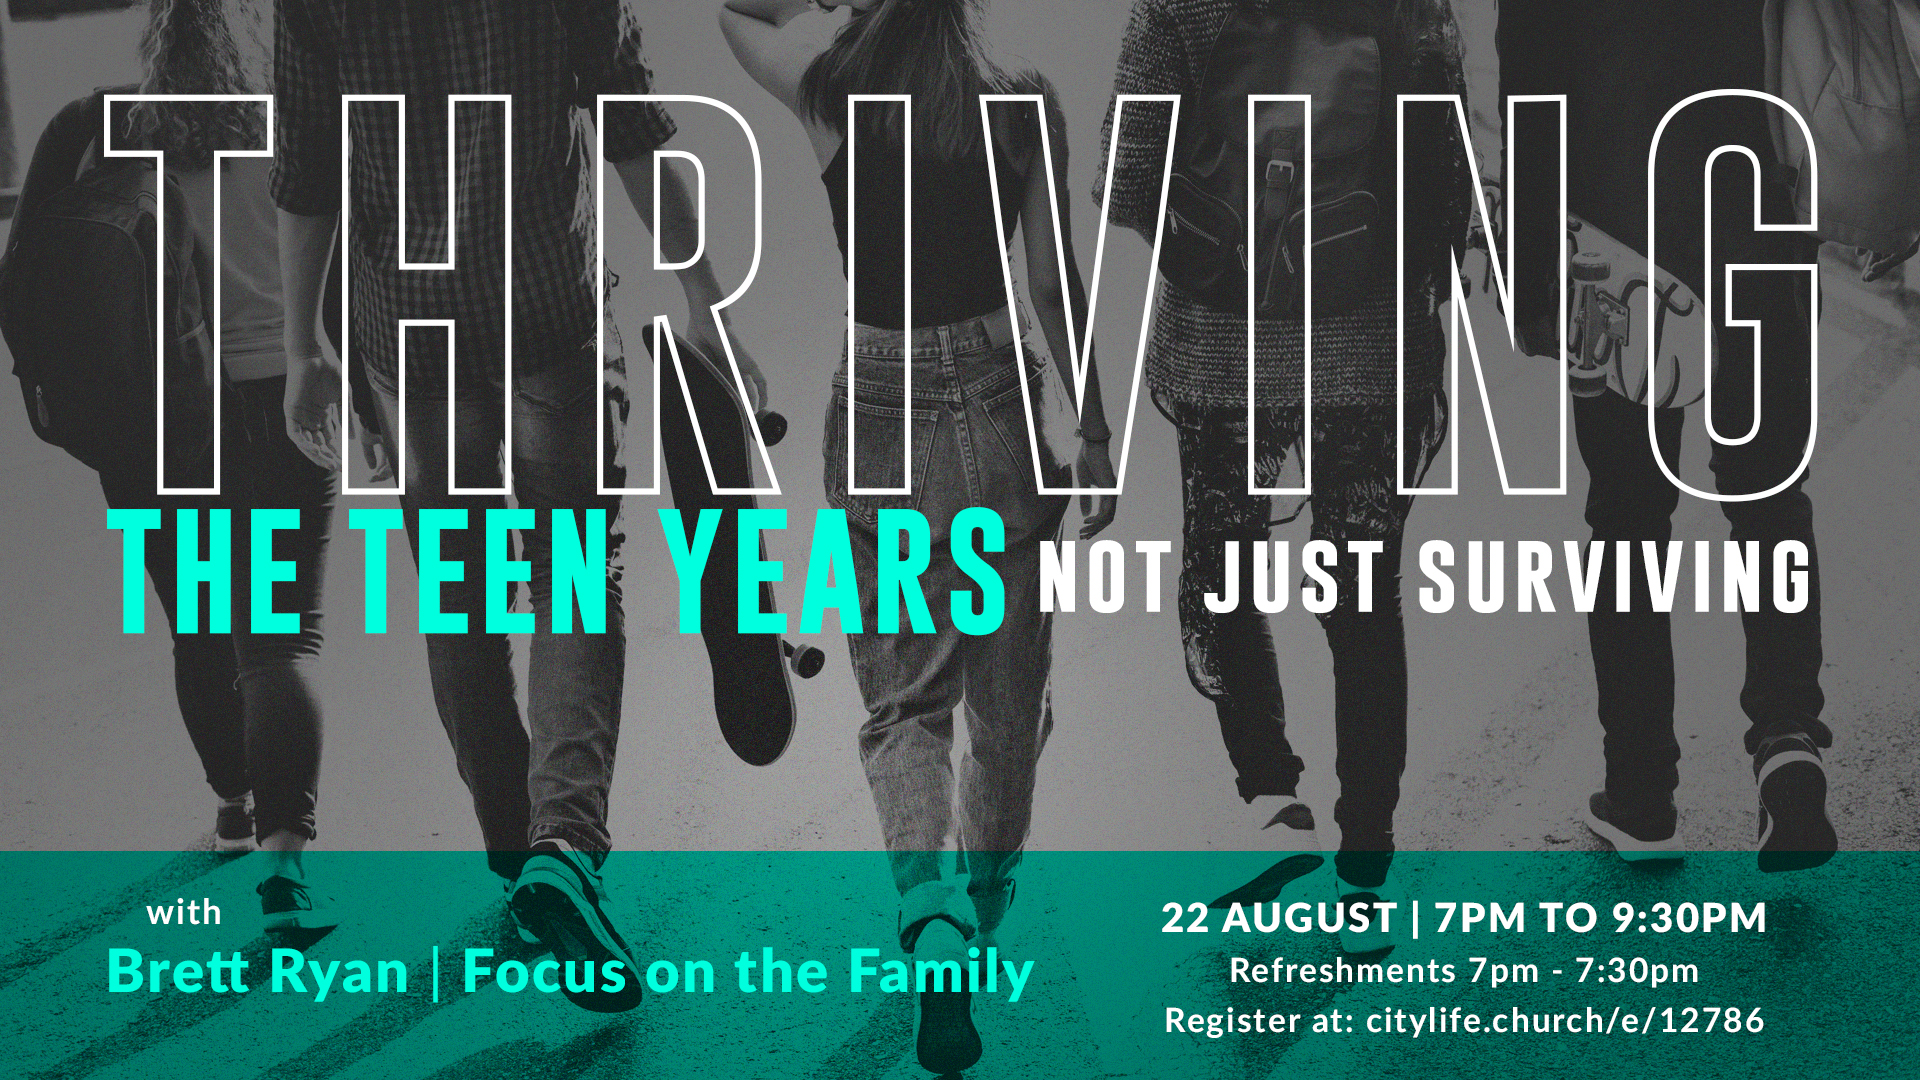 Thriving The Teen Years Not Just Surviving Forum